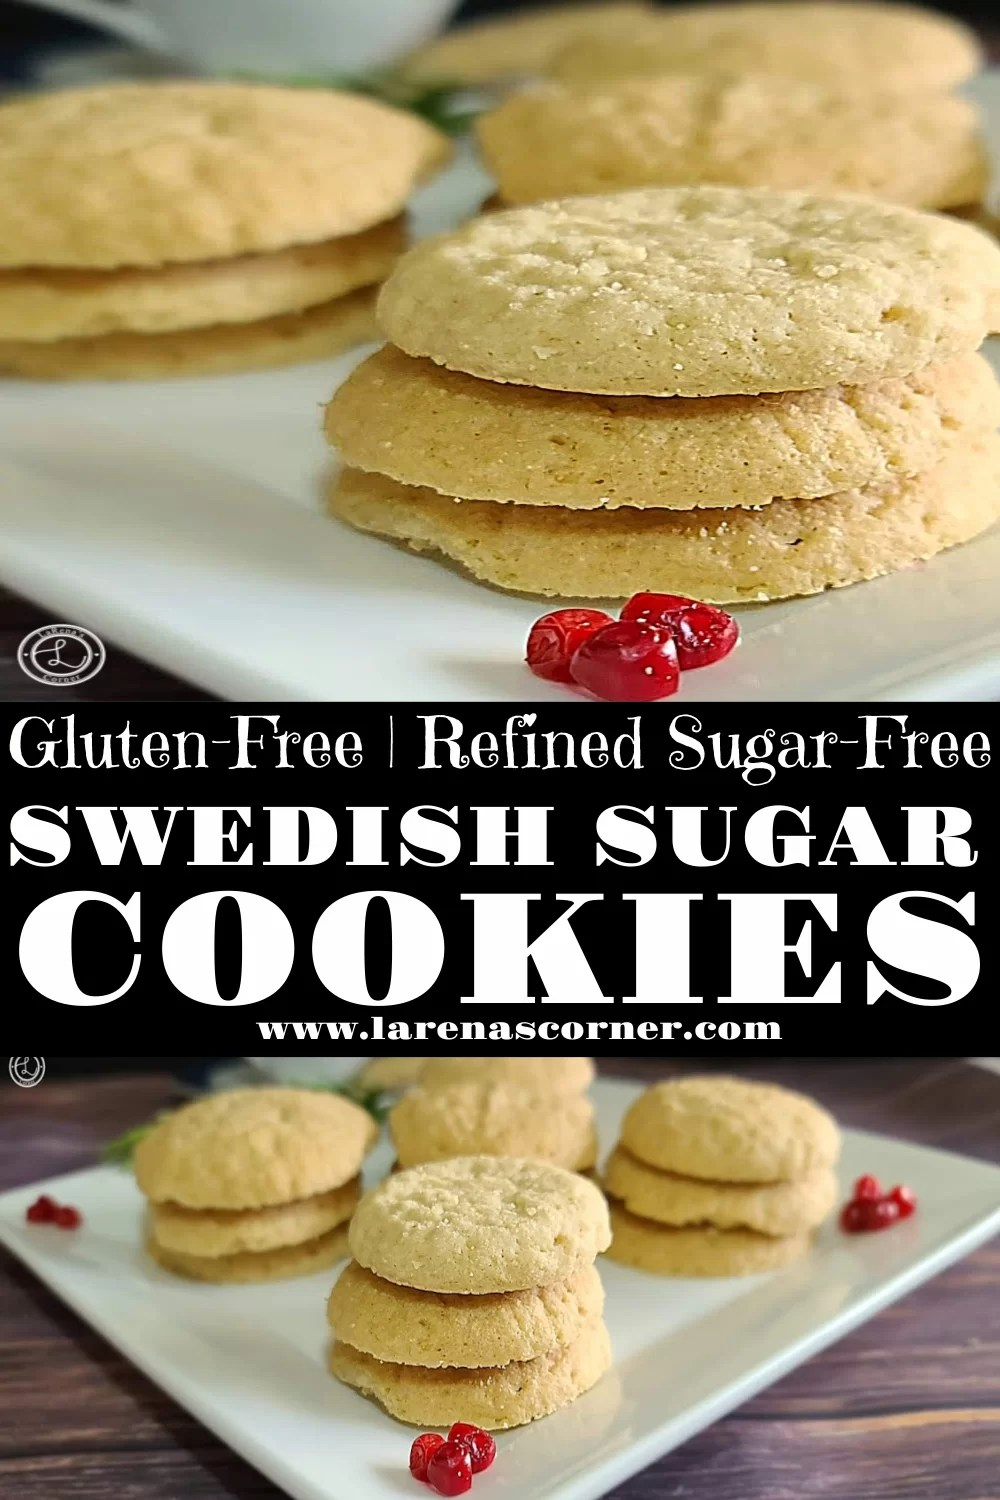 Two pictures of Stacks of cookies on a white plate Gluten-Free Swedish Sugar Cookies Recipe